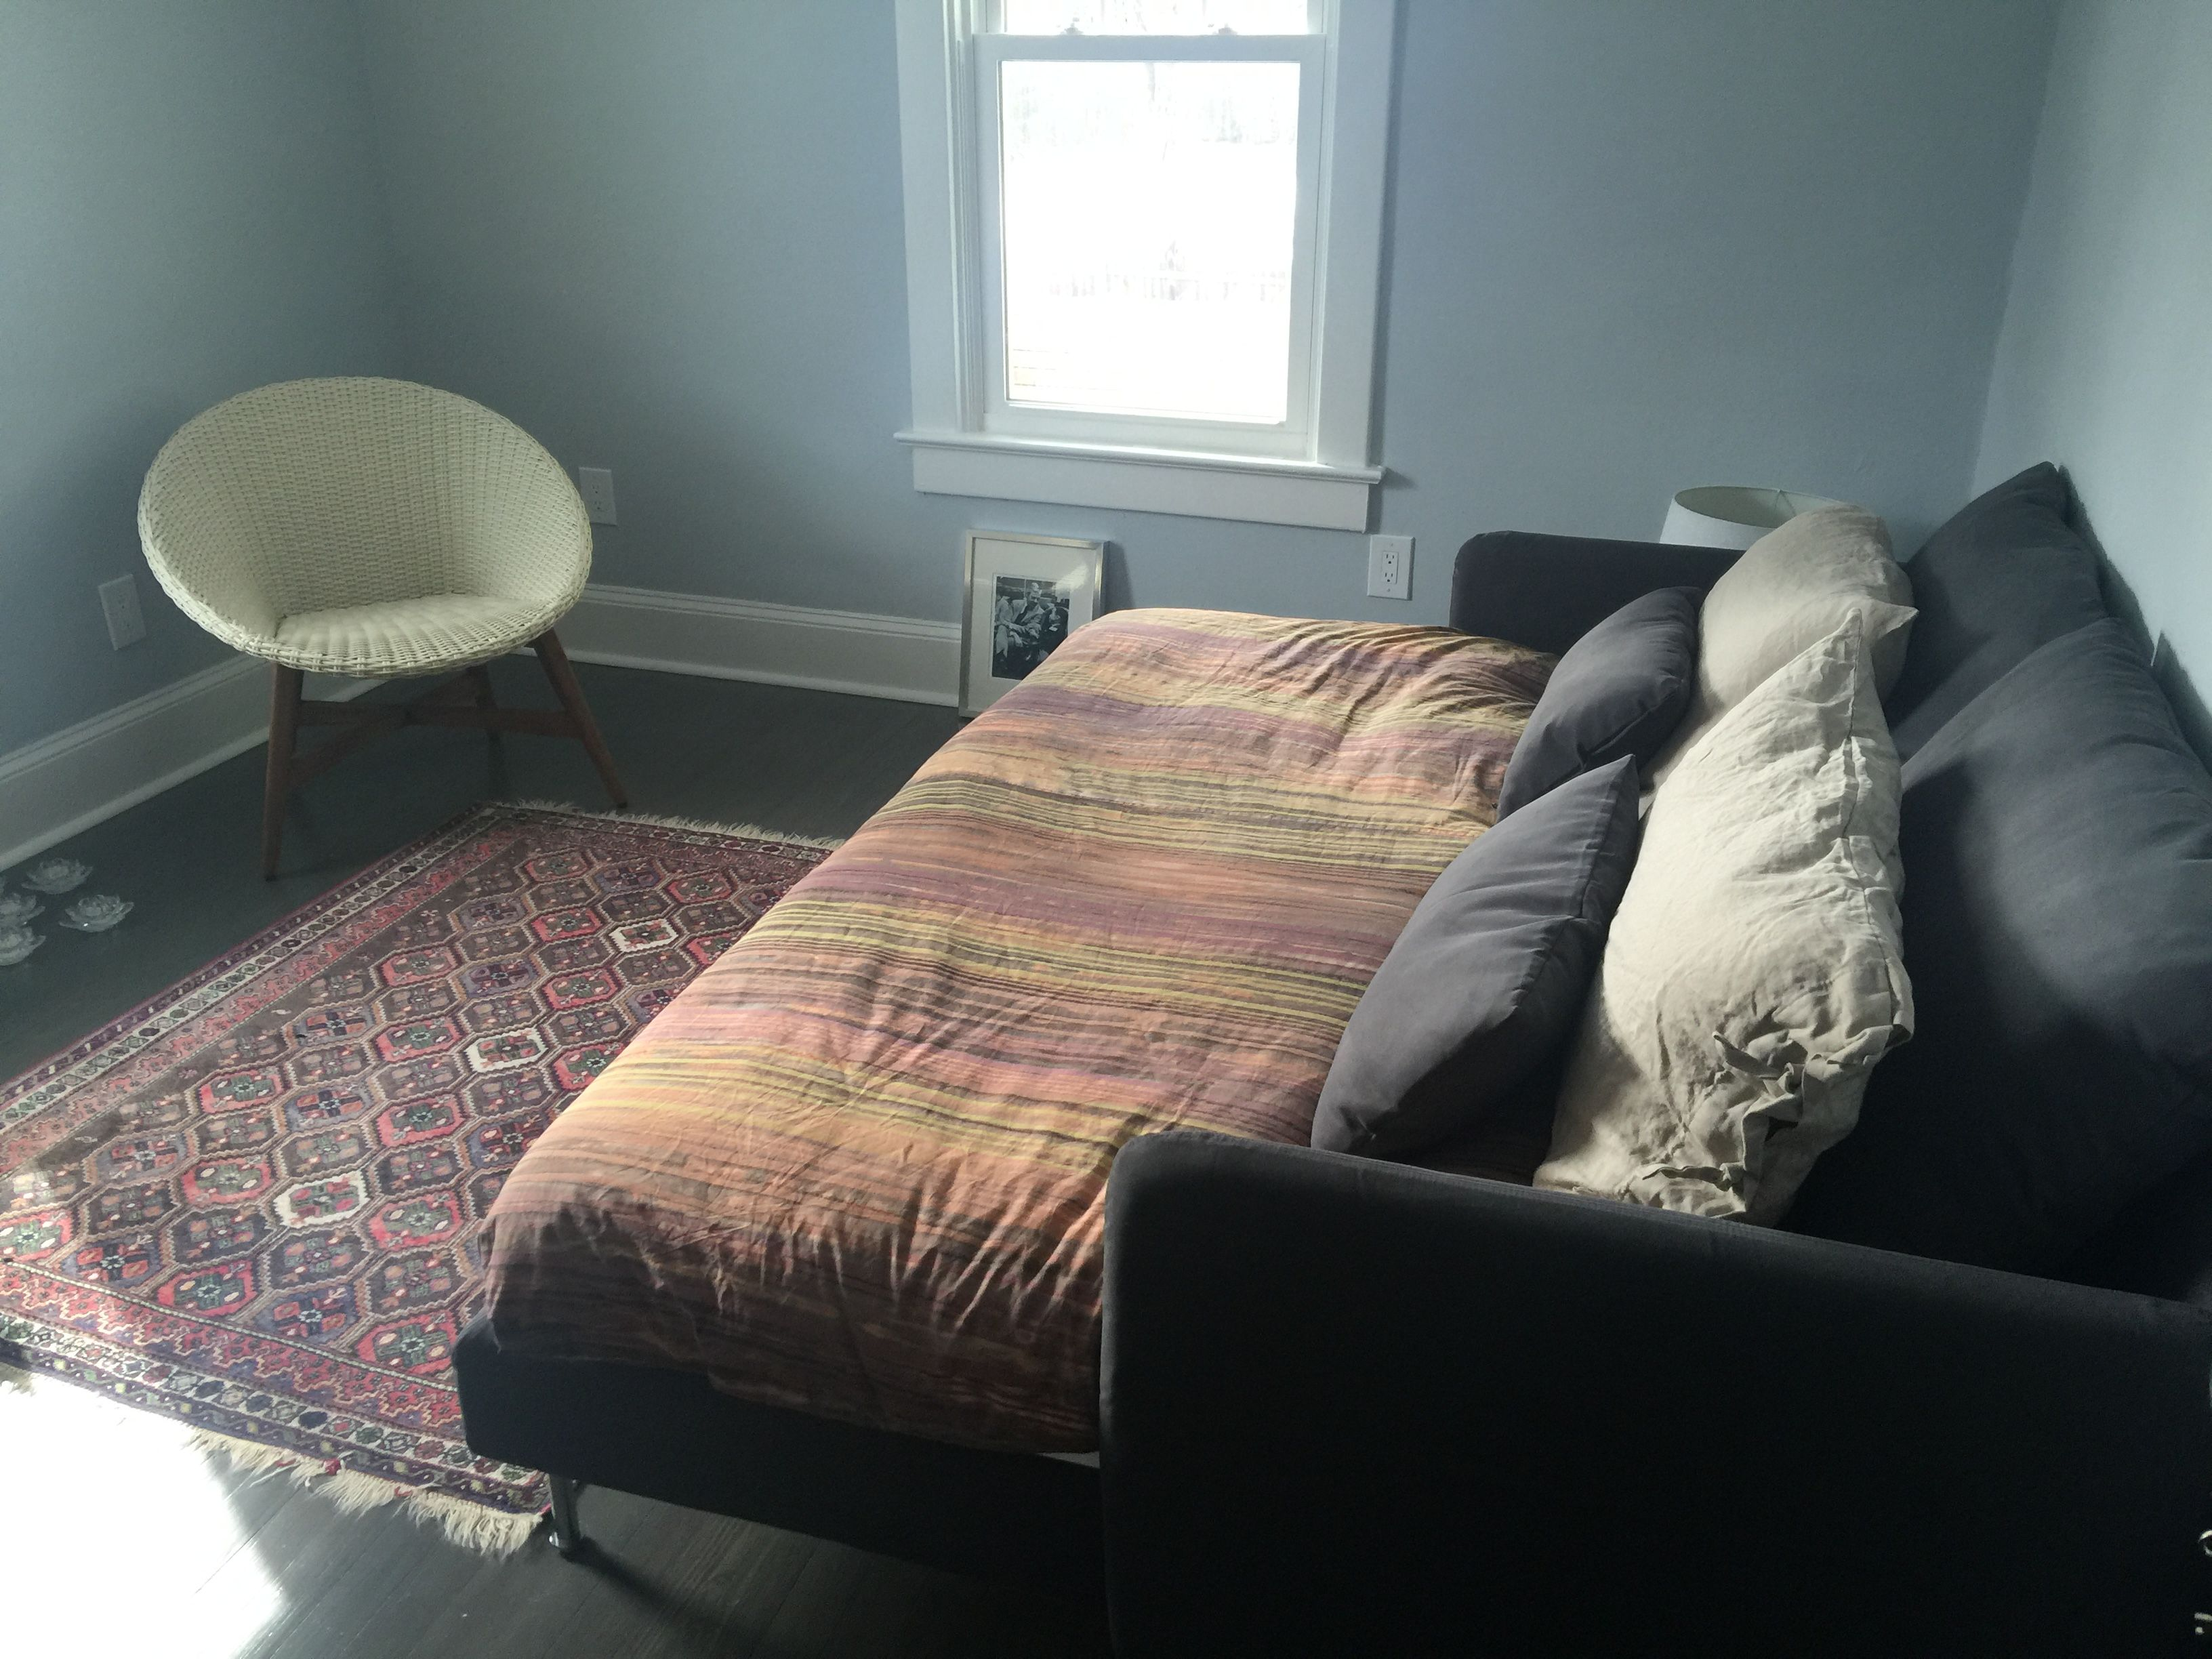 Full daybed IKEA hack with two Soderhamn chaises and a mattress. Place to  lounge,